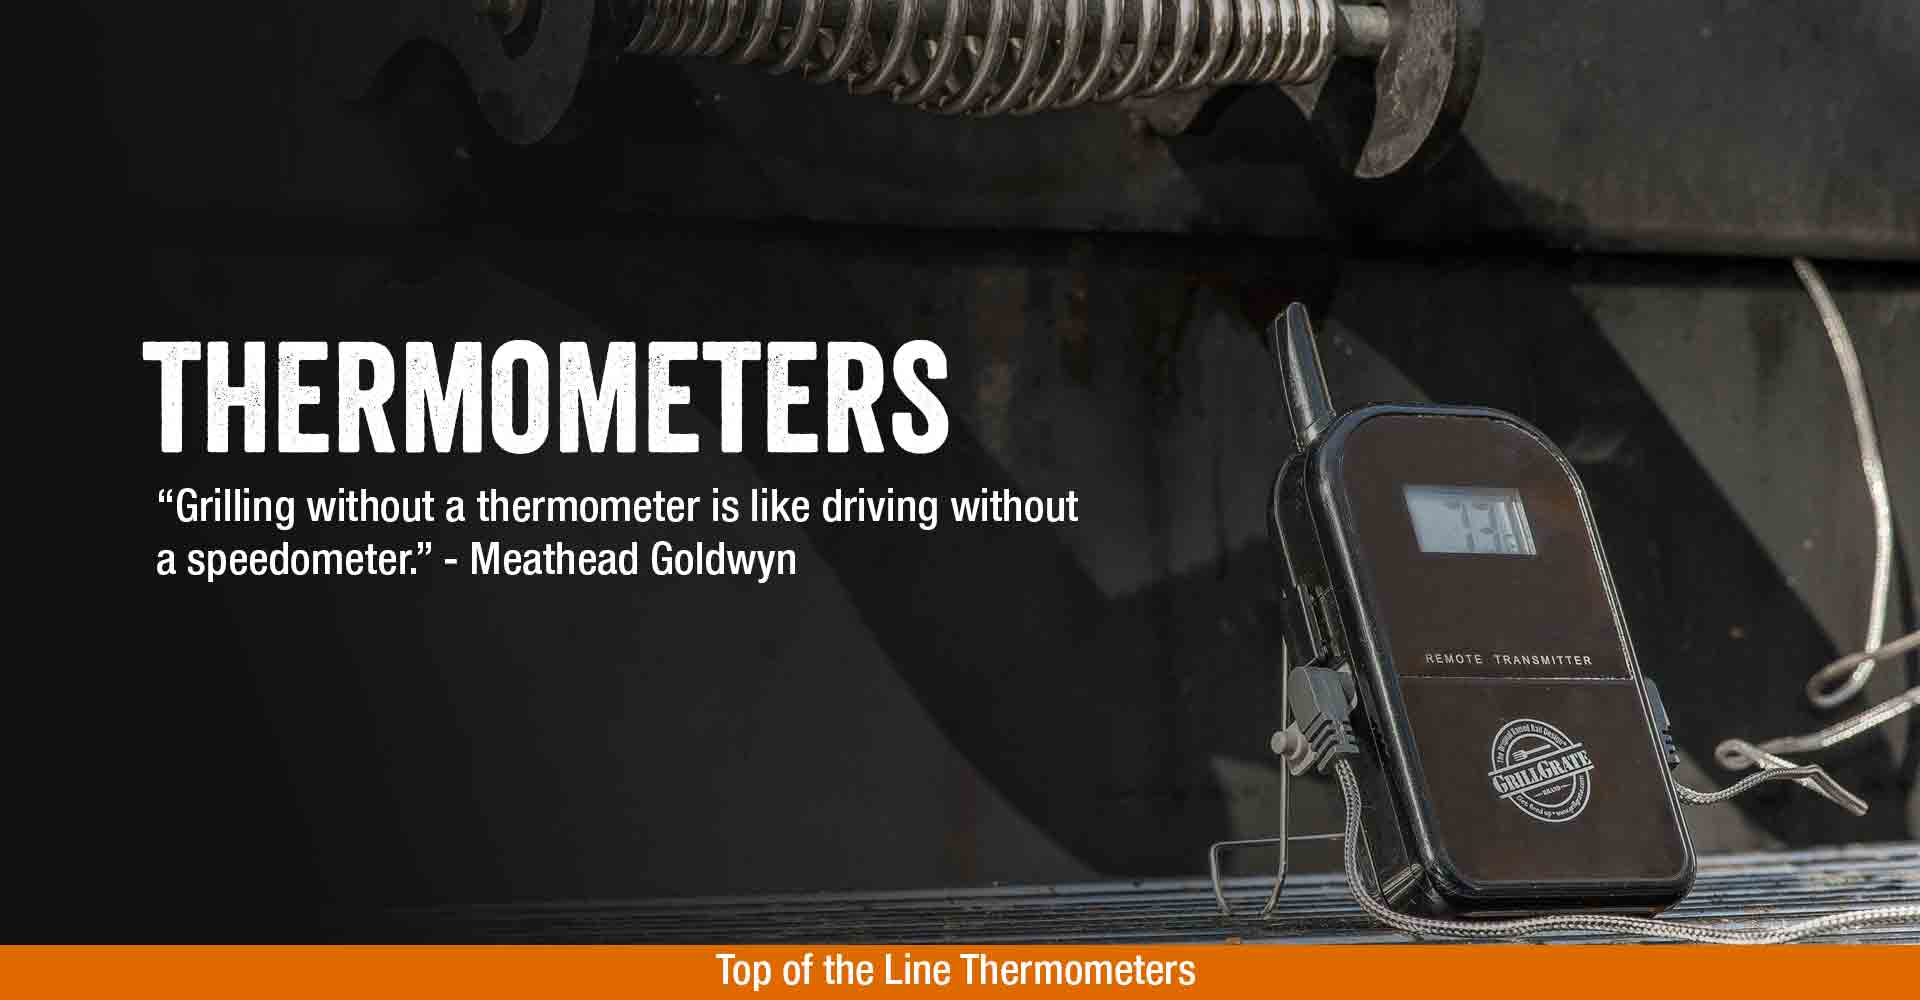 thermometers-category-header2.jpg